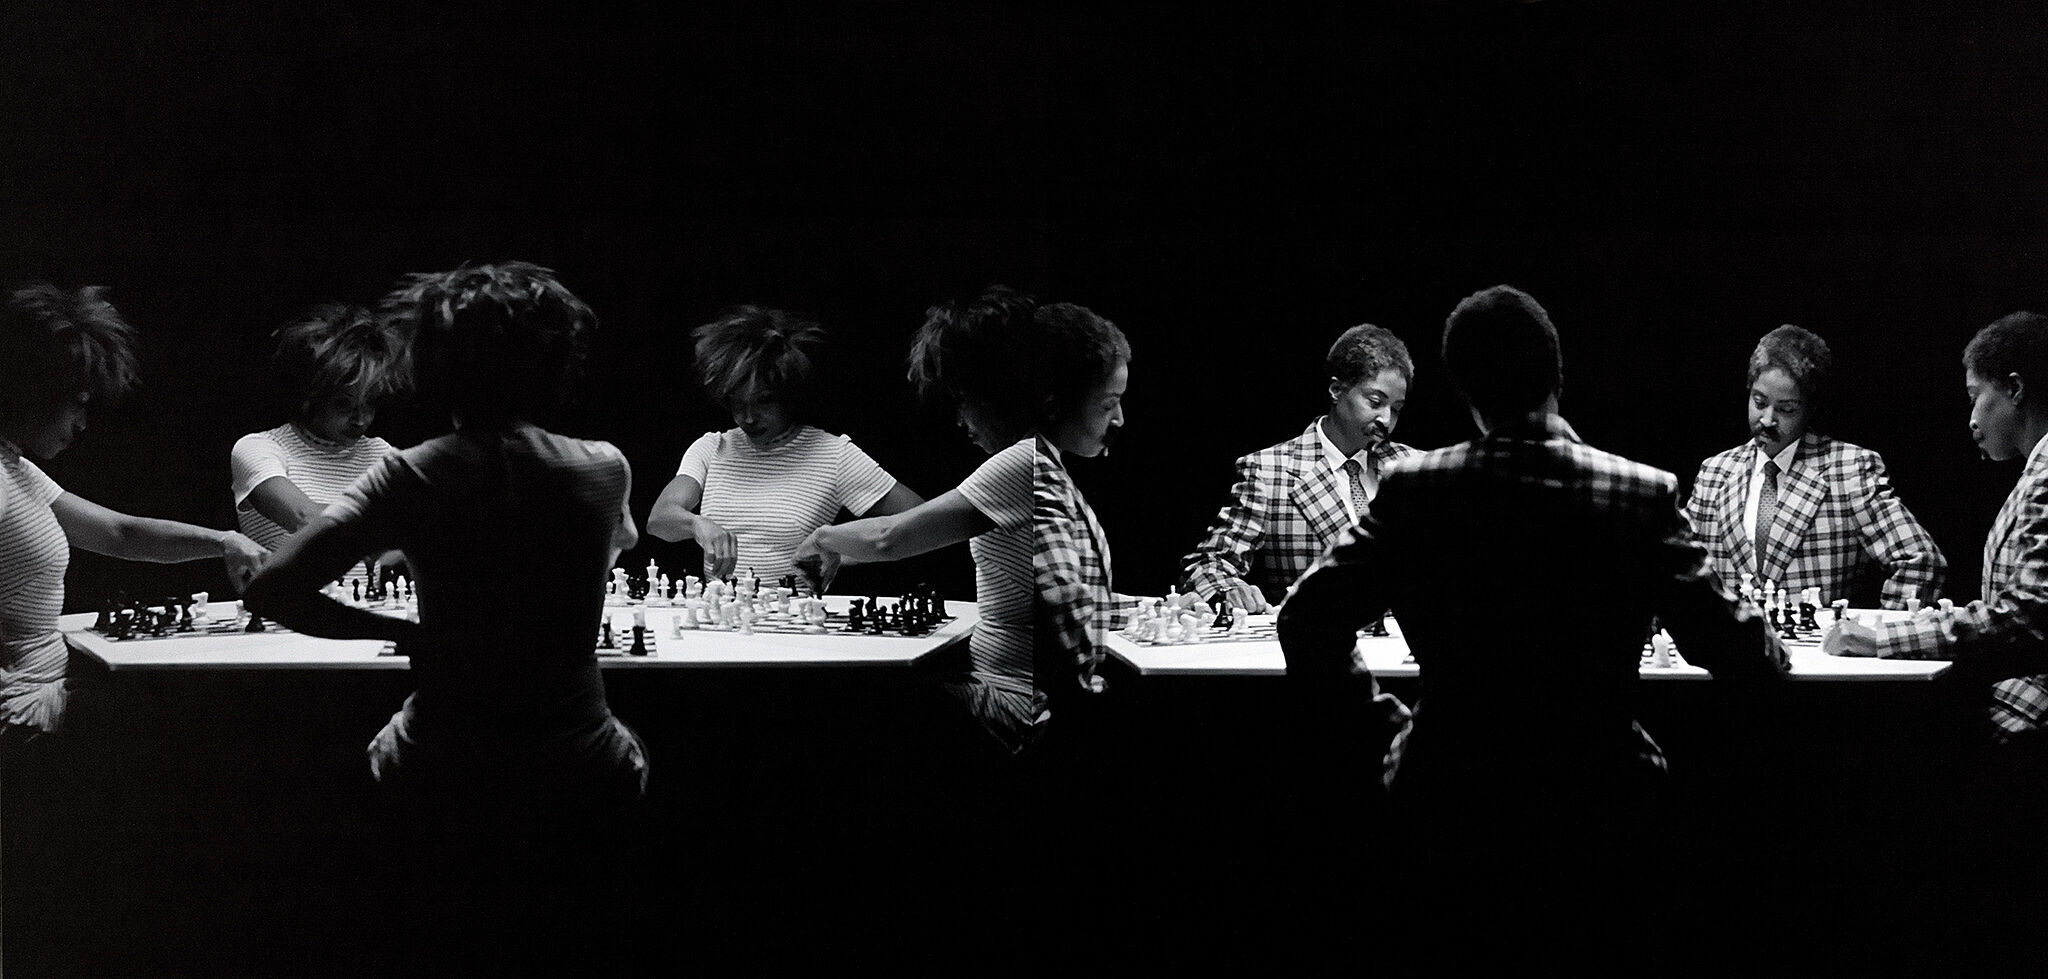 A high contrast photograph of people playing chess.